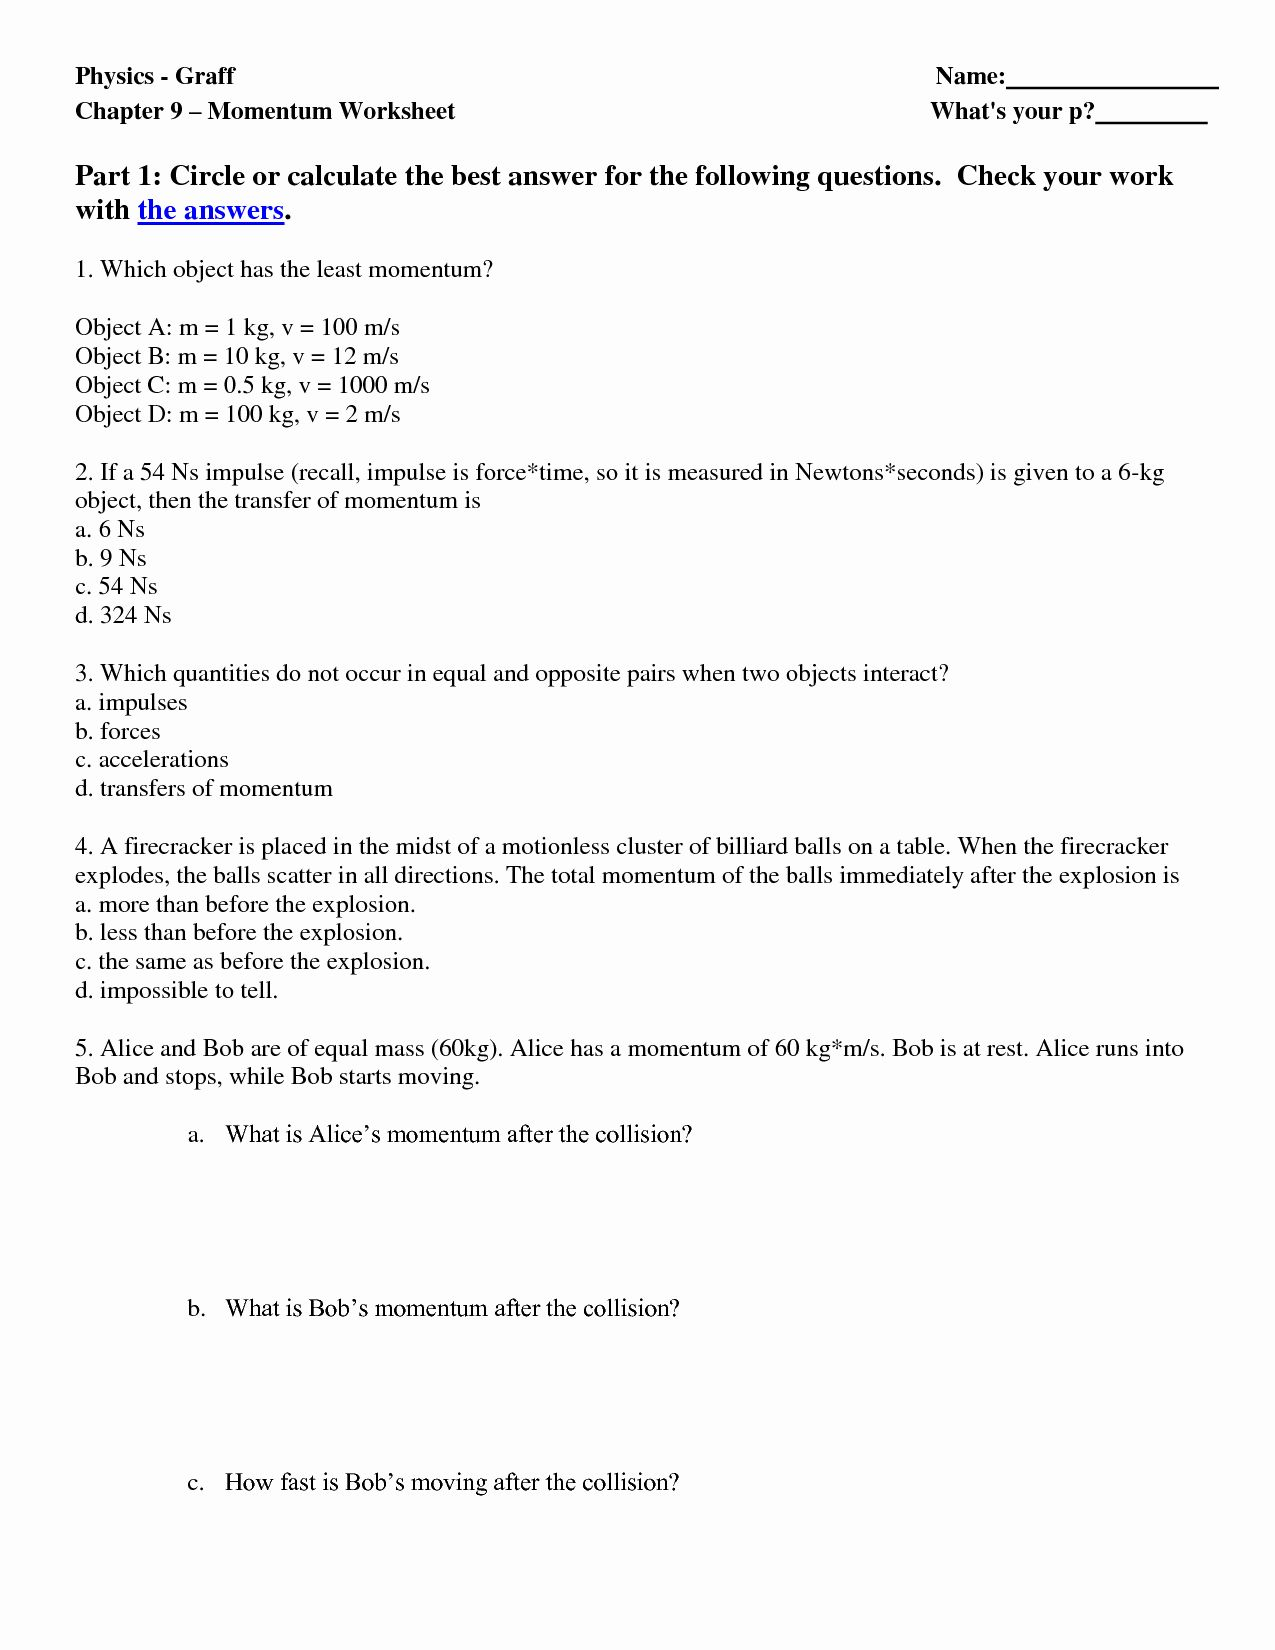 50 Energy Transformation Worksheet Middle School in 2020